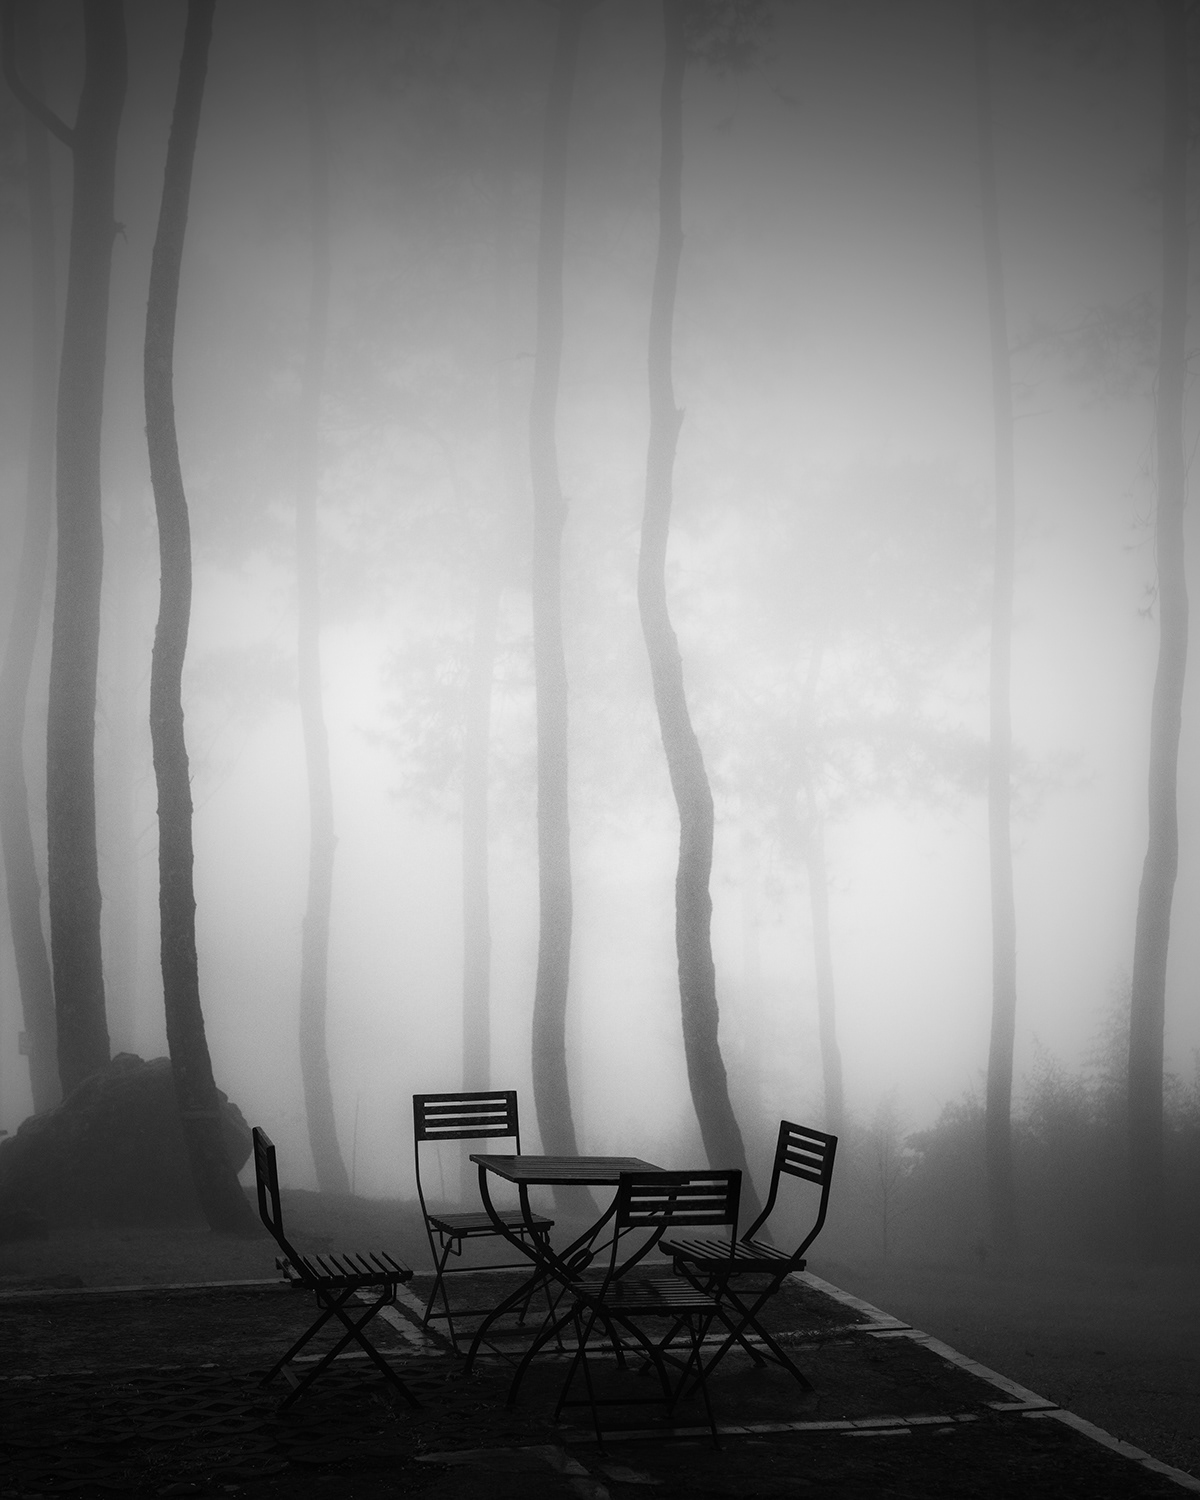 Image may contain: fog, furniture and tree